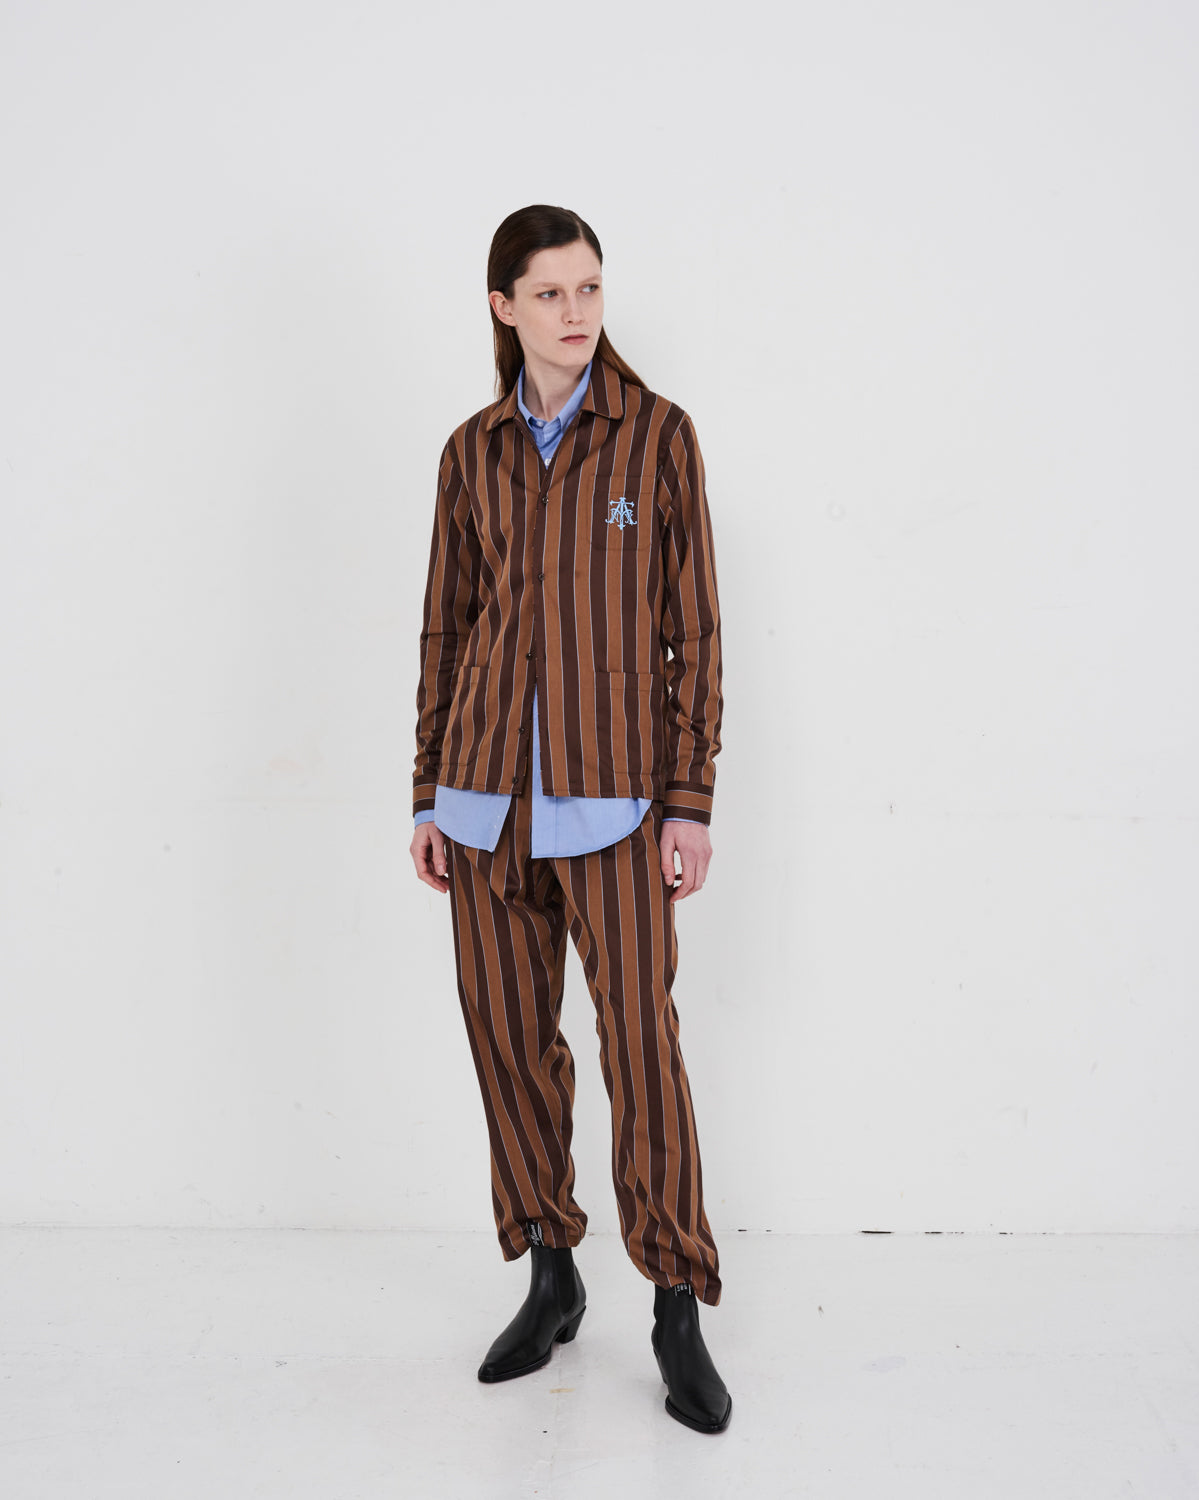 Model wears The Academy New York Crest PJ Shirt and PJ Pant in brown/blue stripe.